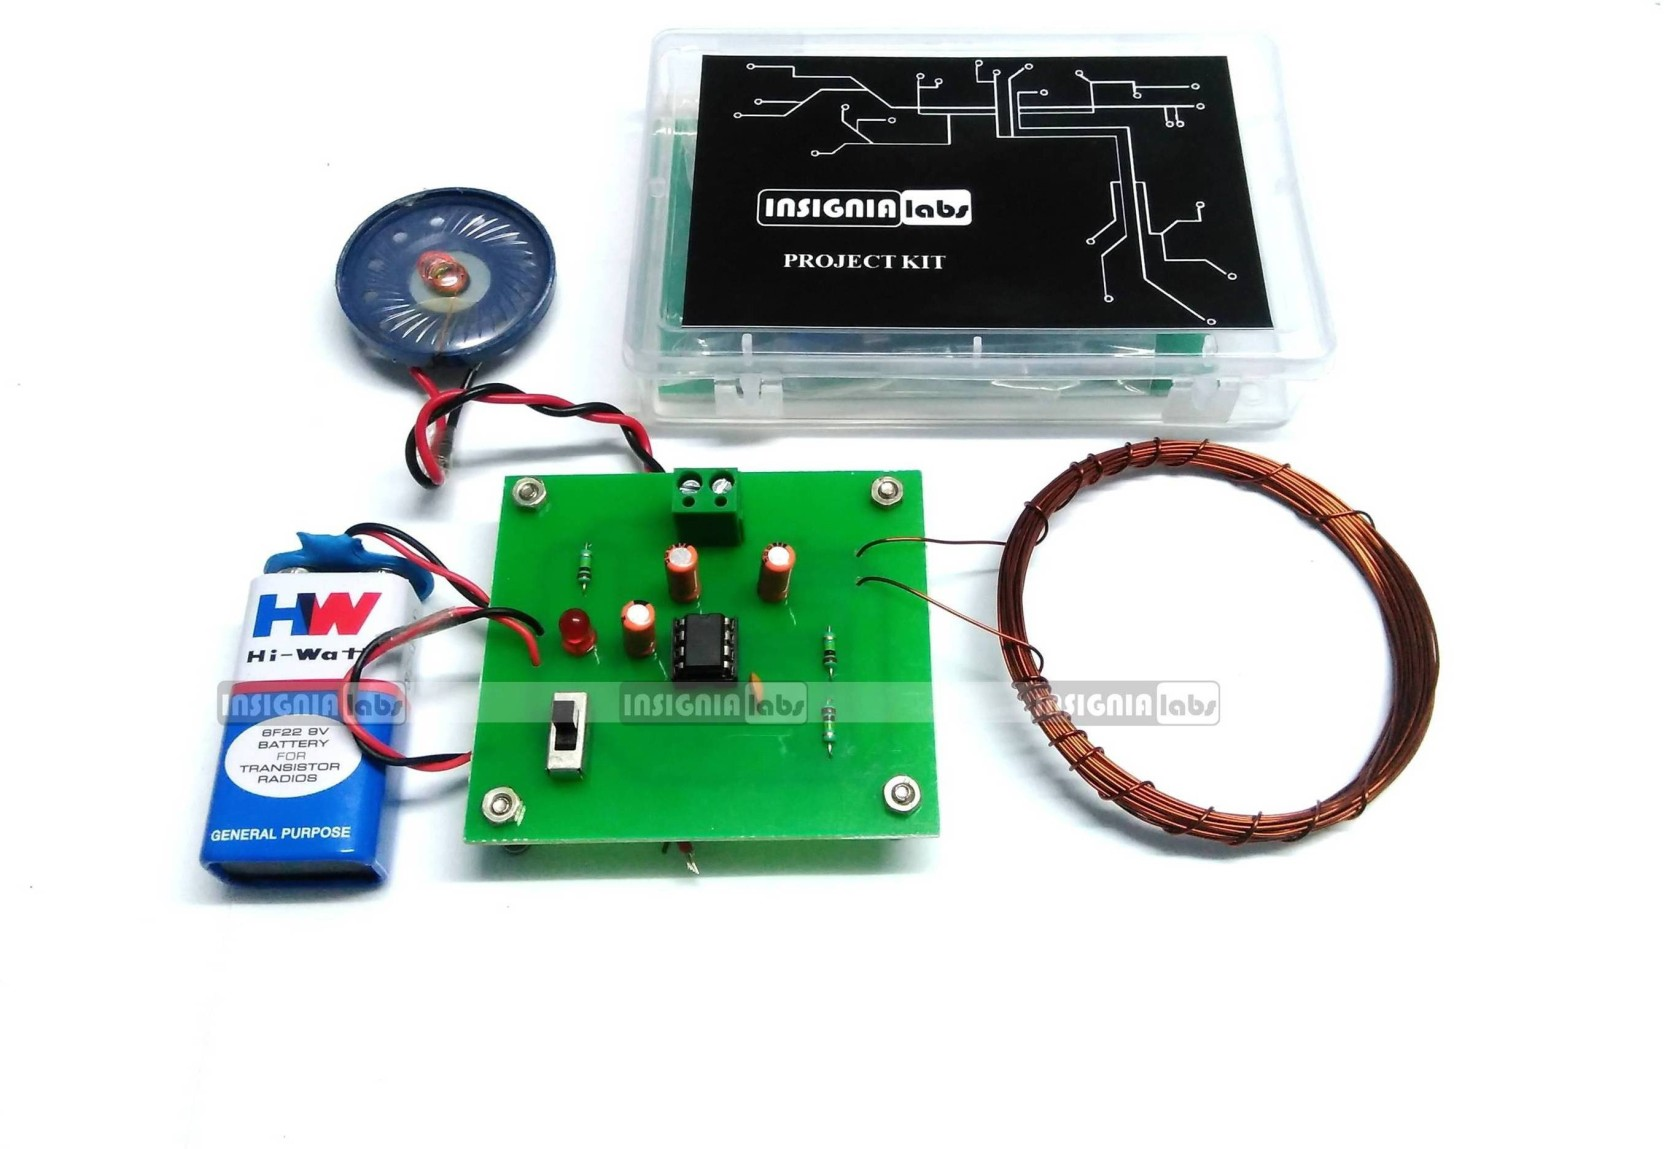 Insignia Labs Metal Detector Kit Project For School College Electronics Circuits Projects Electronic Kits Hobby More Add To Cart